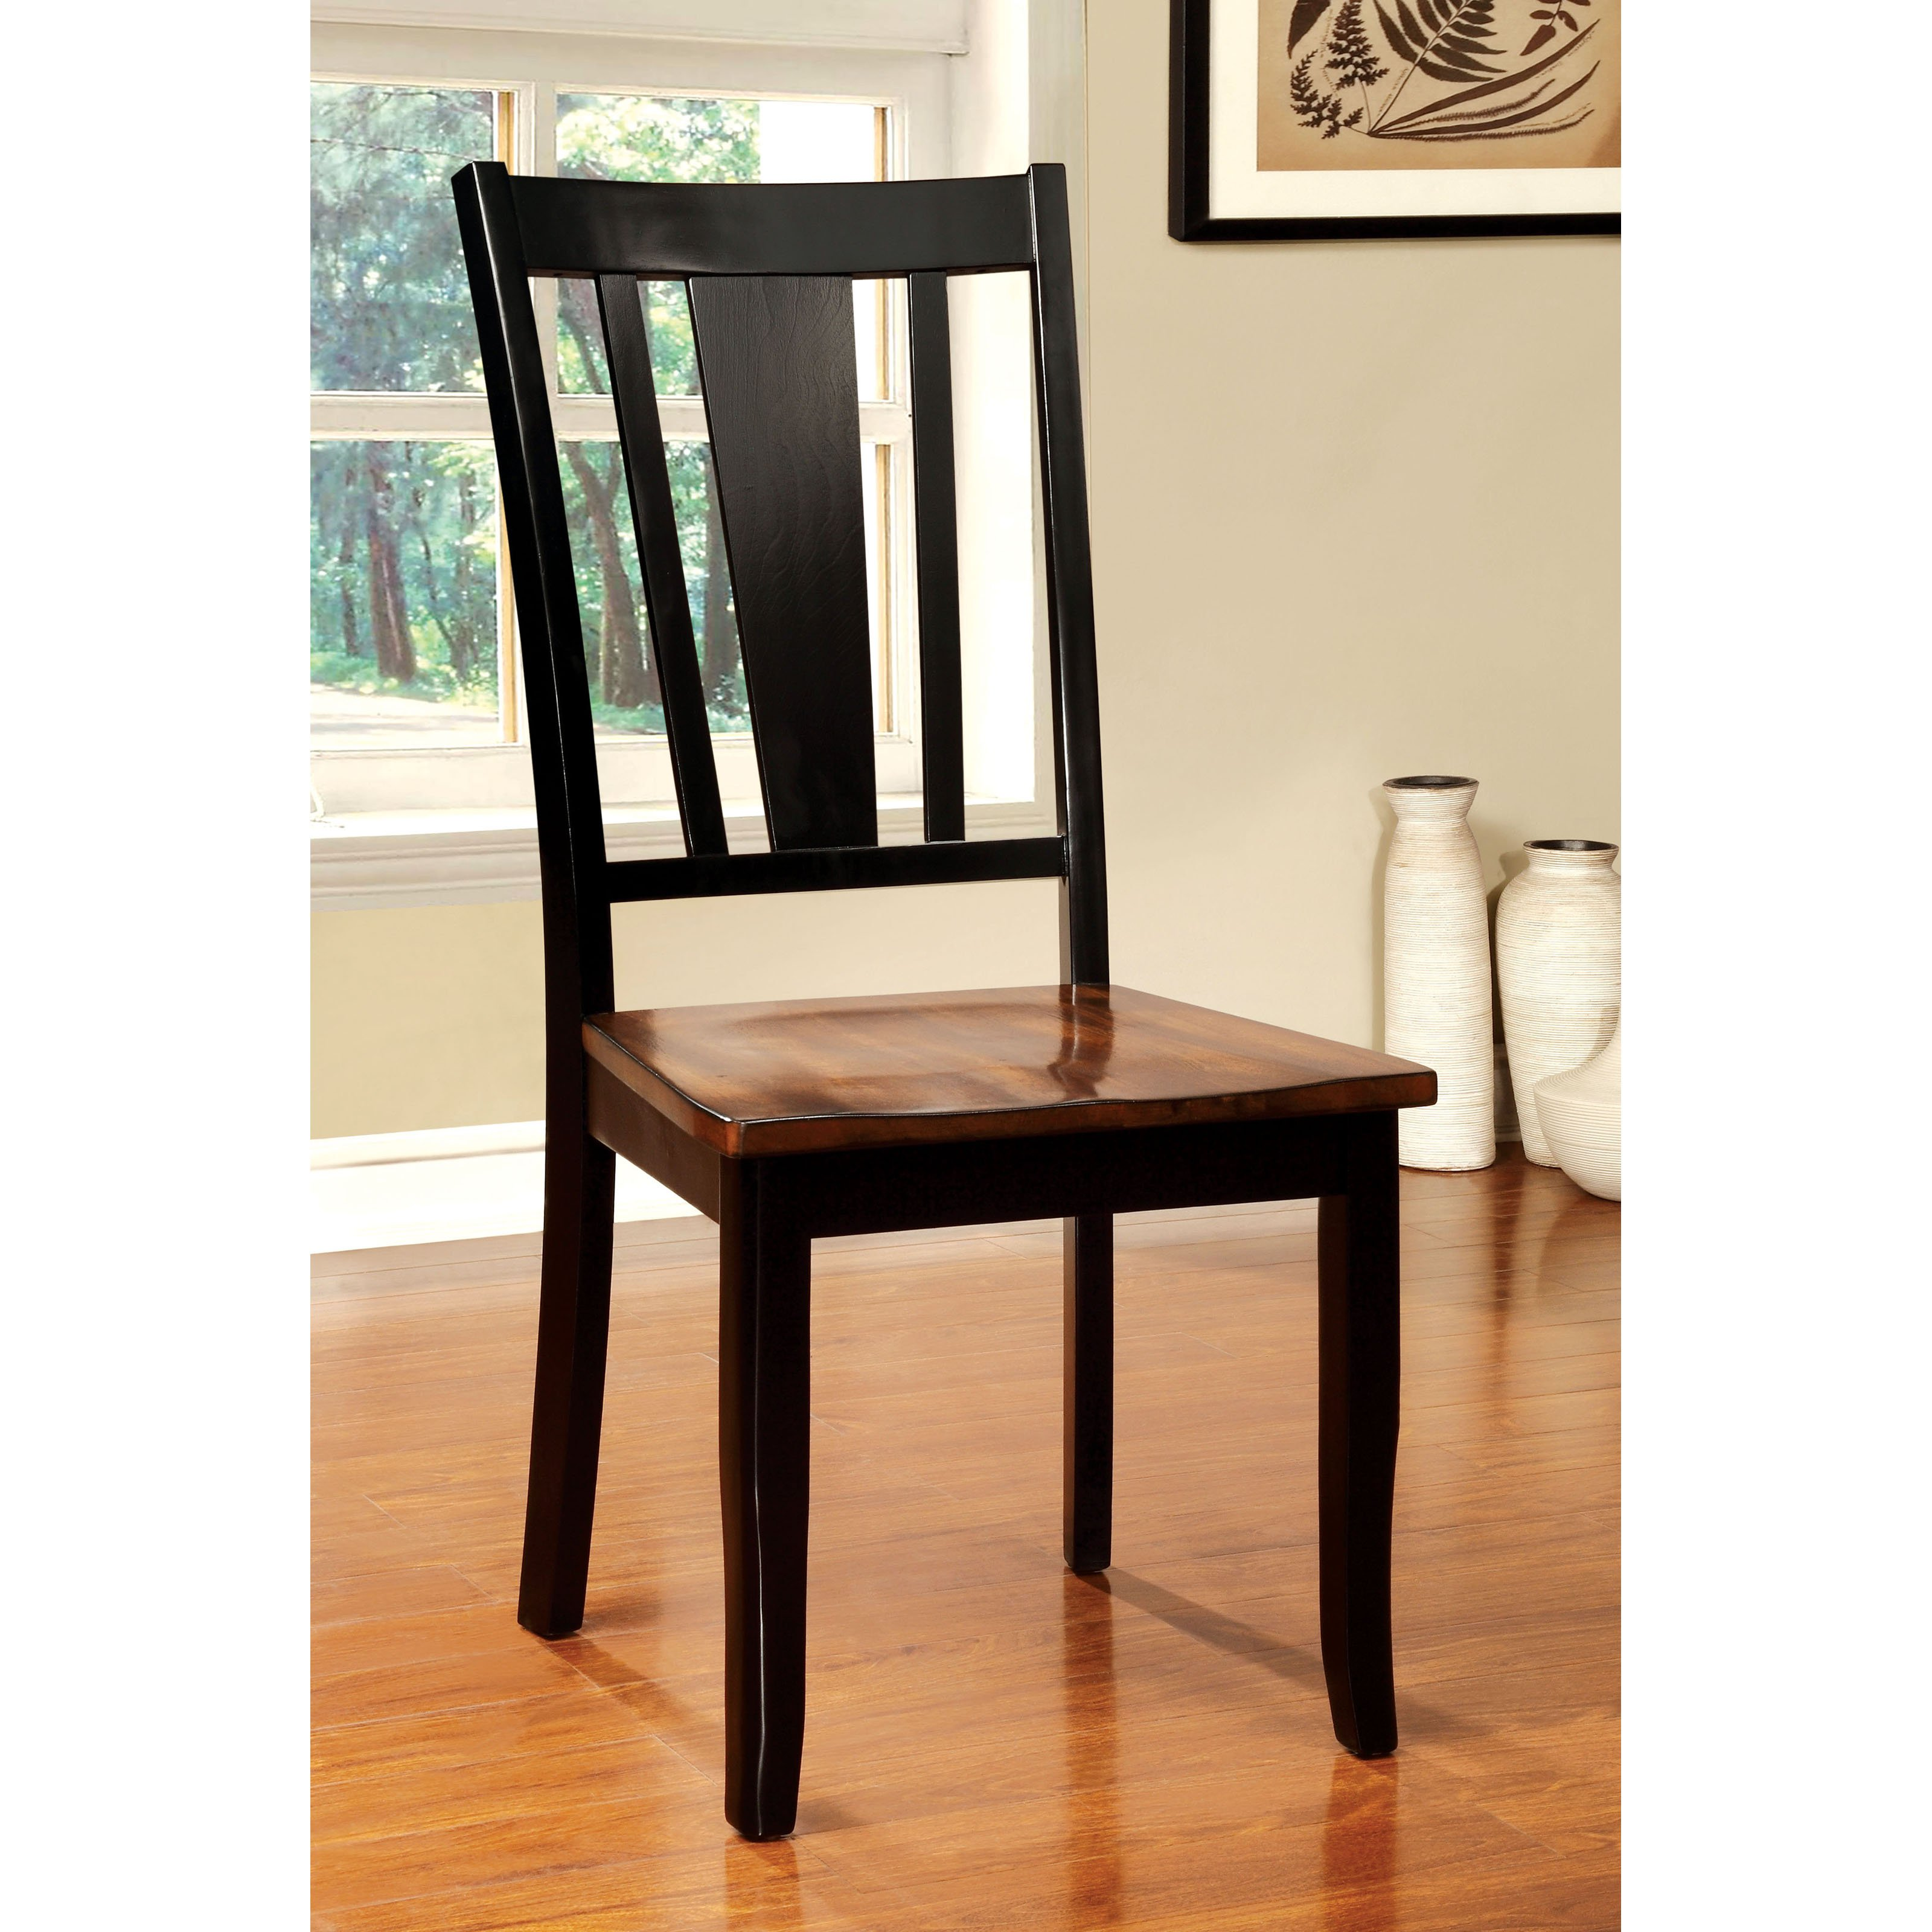 Furniture of America Lohman Dual-Tone Dining Side Chair